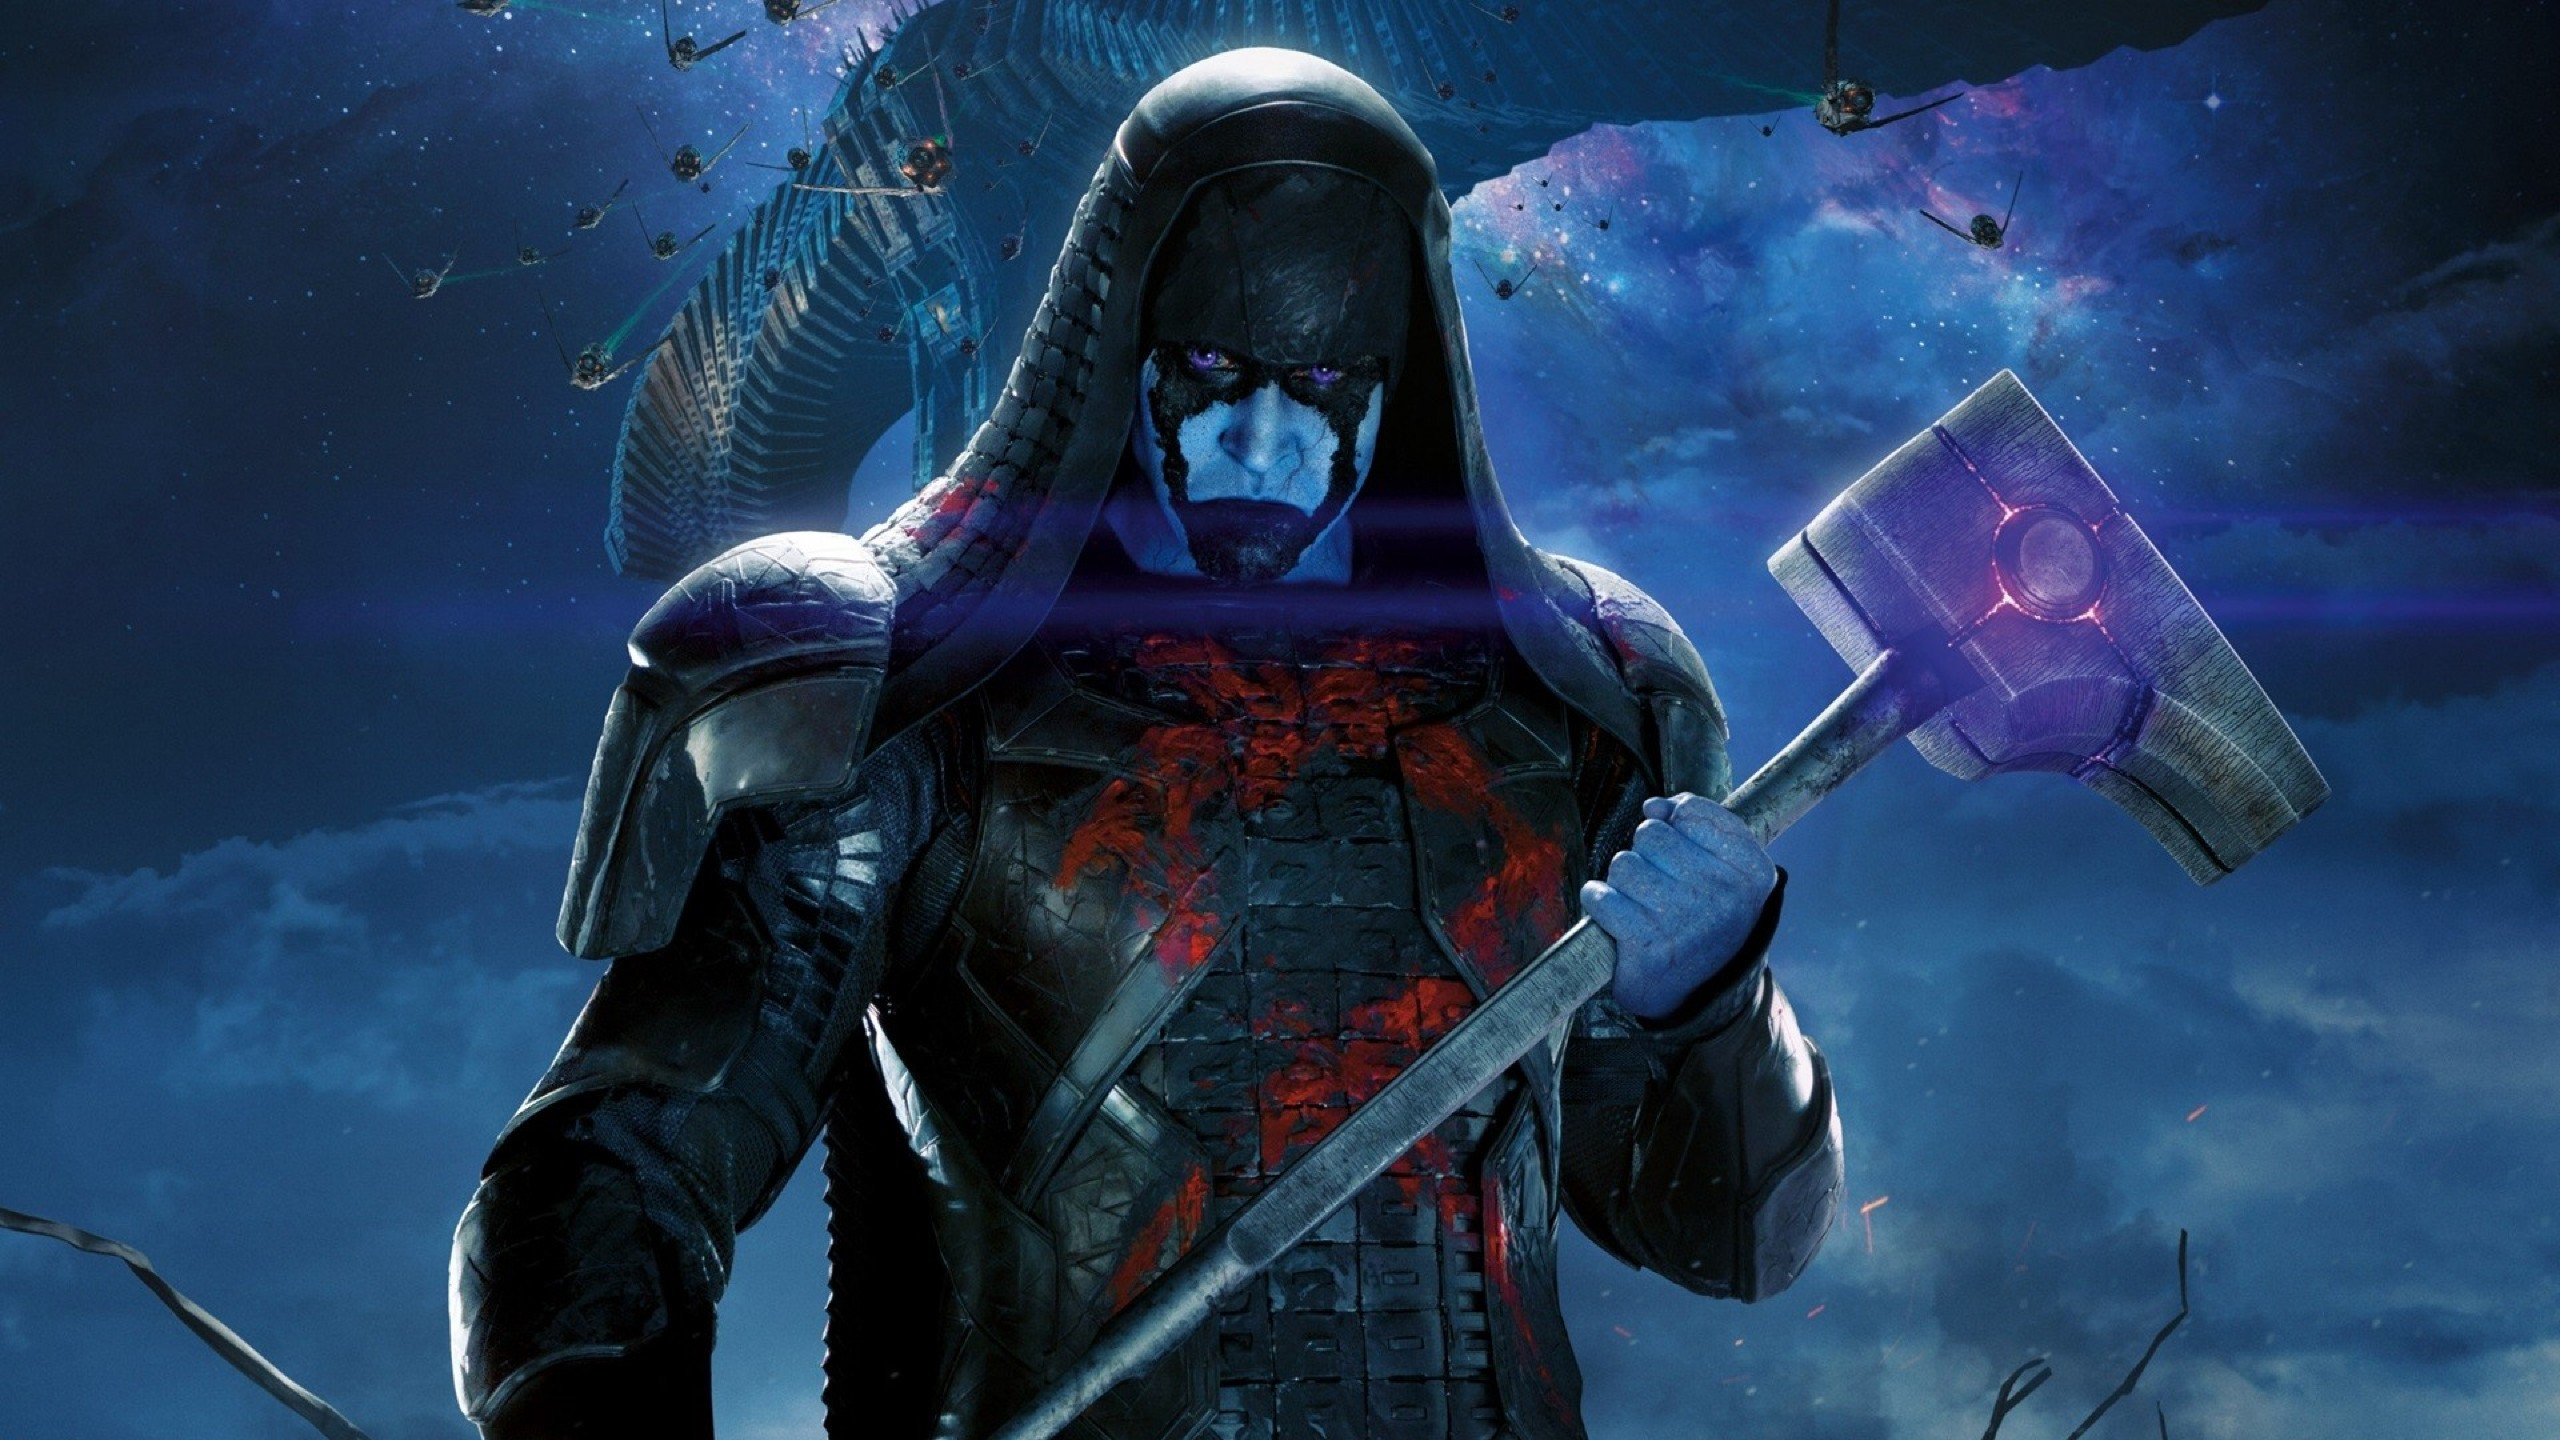 2560x1440 Ronan Guardians Of The Galaxy 1440p Resolution Wallpaper